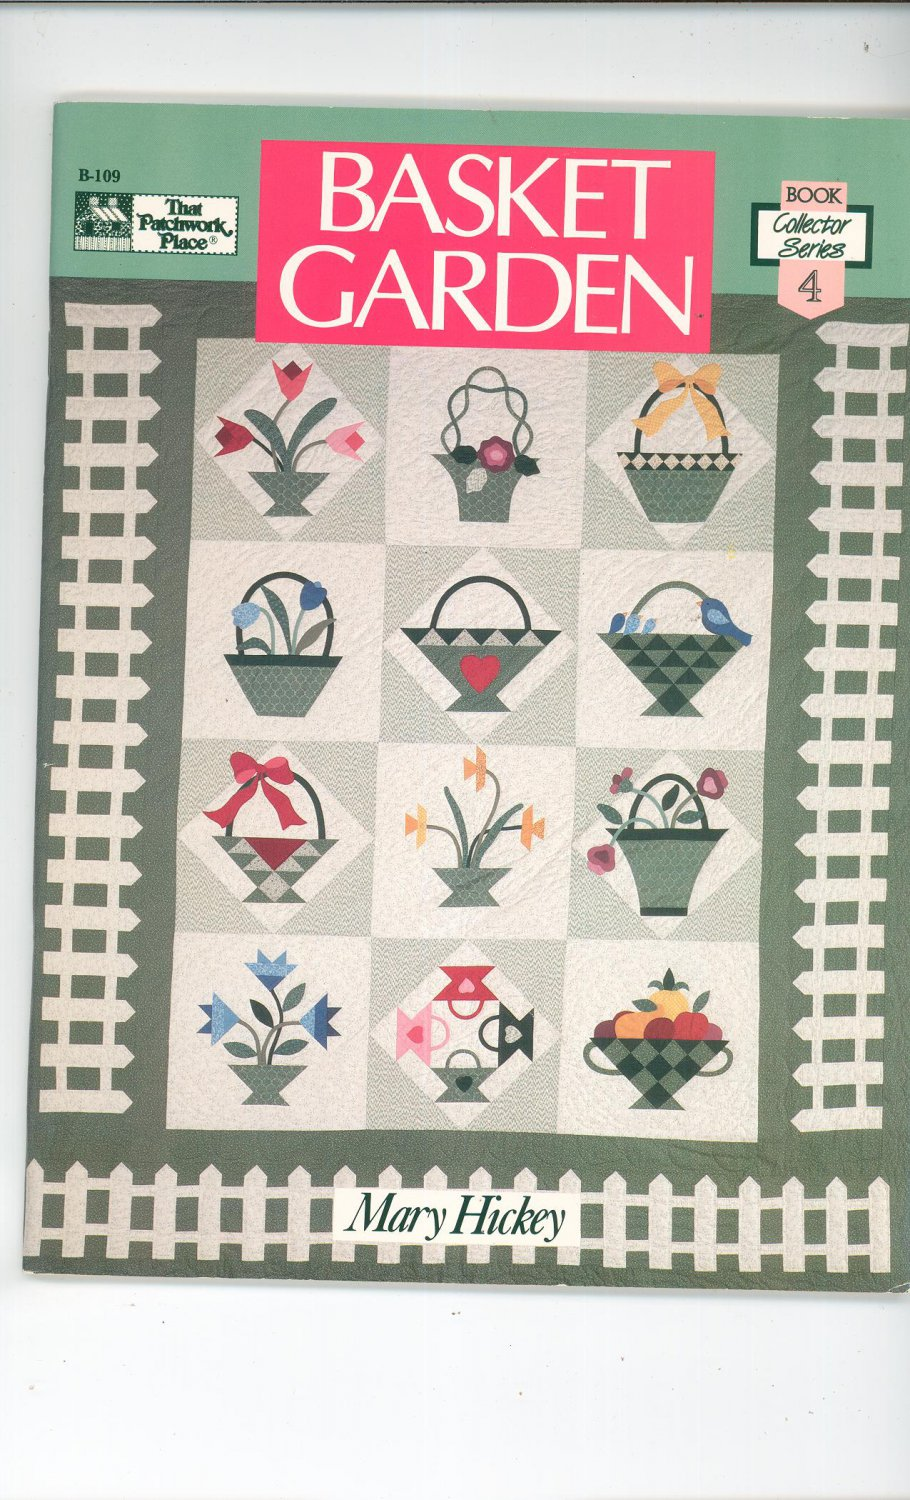 Basket Garden By Mary Hickey 0943574617 Book 4 Collector Series That Patchwork Place